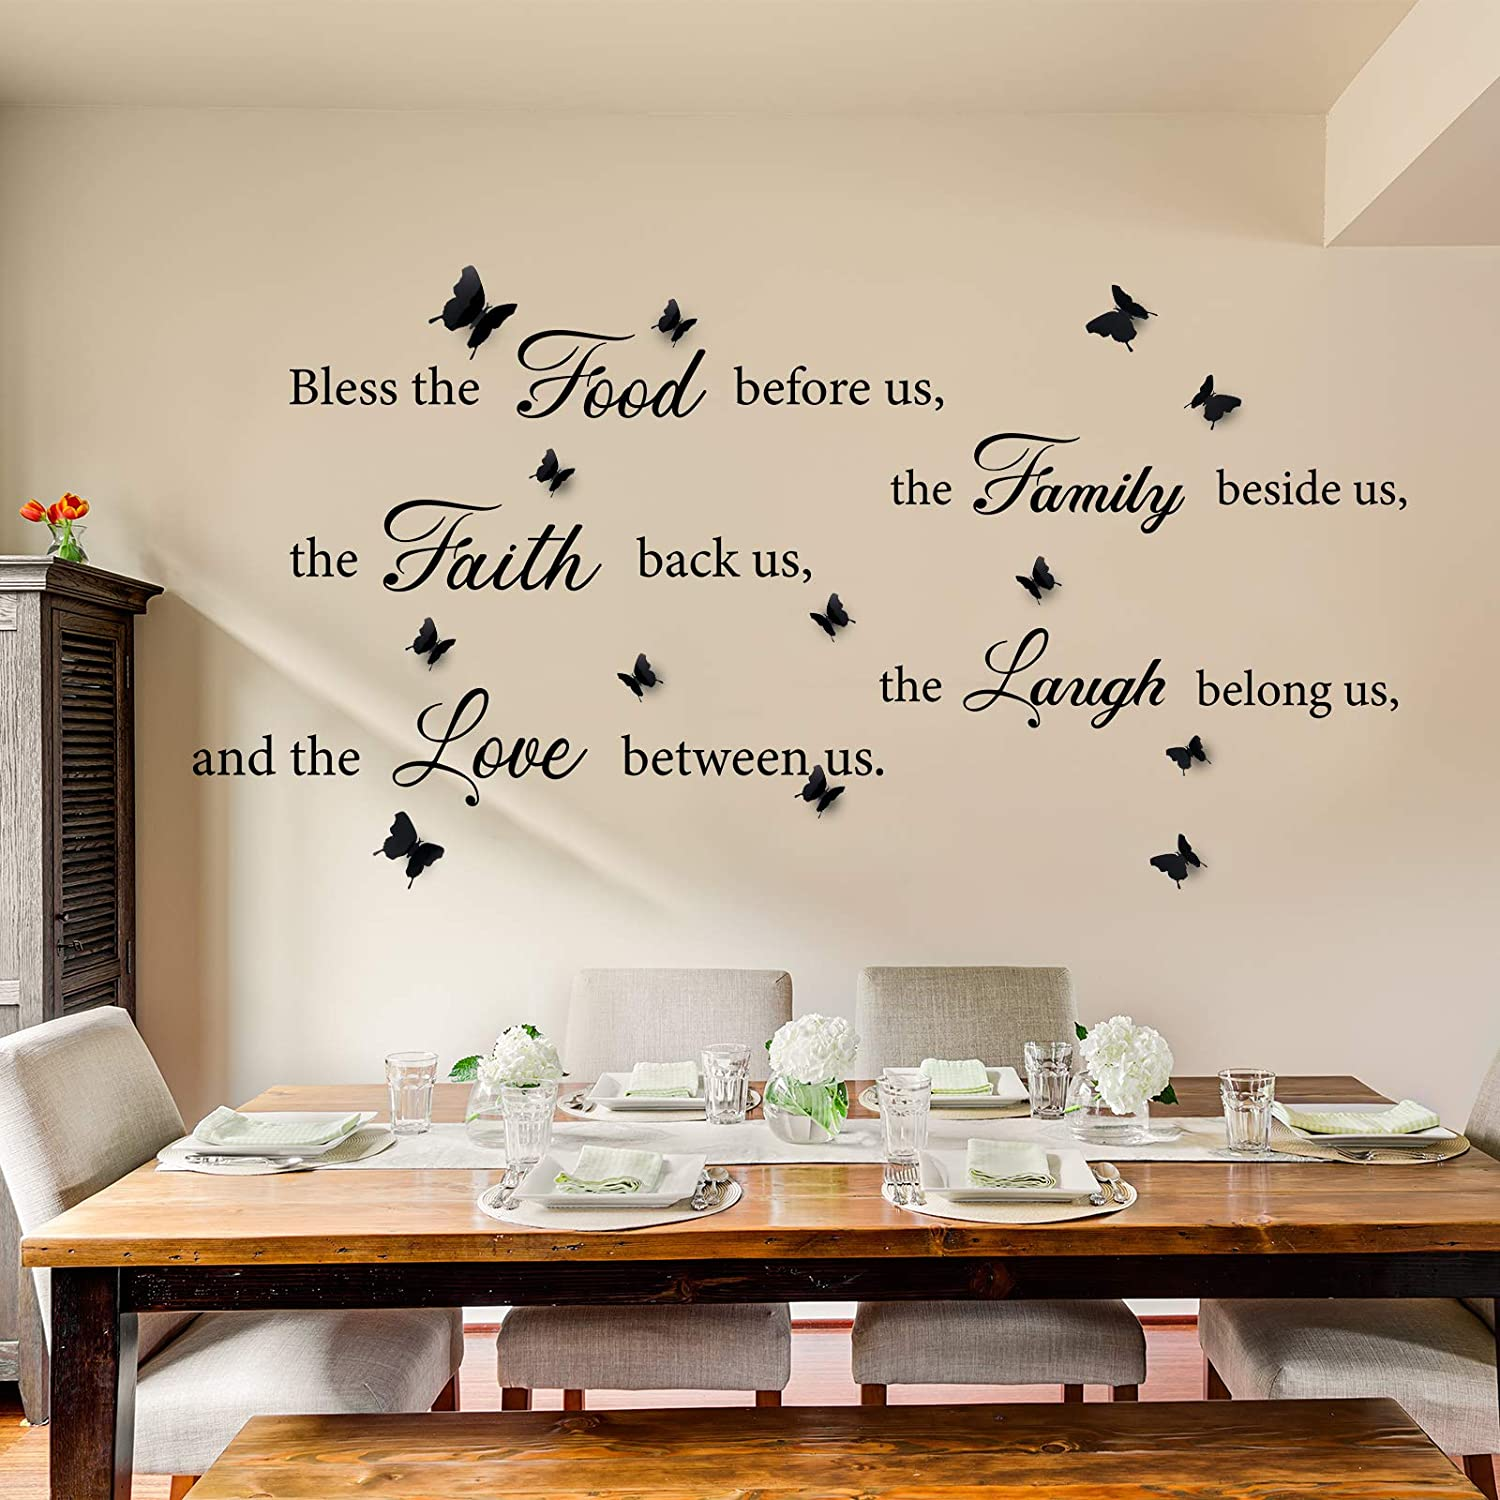 Kitchen Wall Decal, Bless The Food Before Us, The Family Beside Us, The Faith Back Us, The Laugh Belong Us, The Love Between Us, Dining Room Prayer Sticker Butterfly Positive Quote Thanksgiving Mural